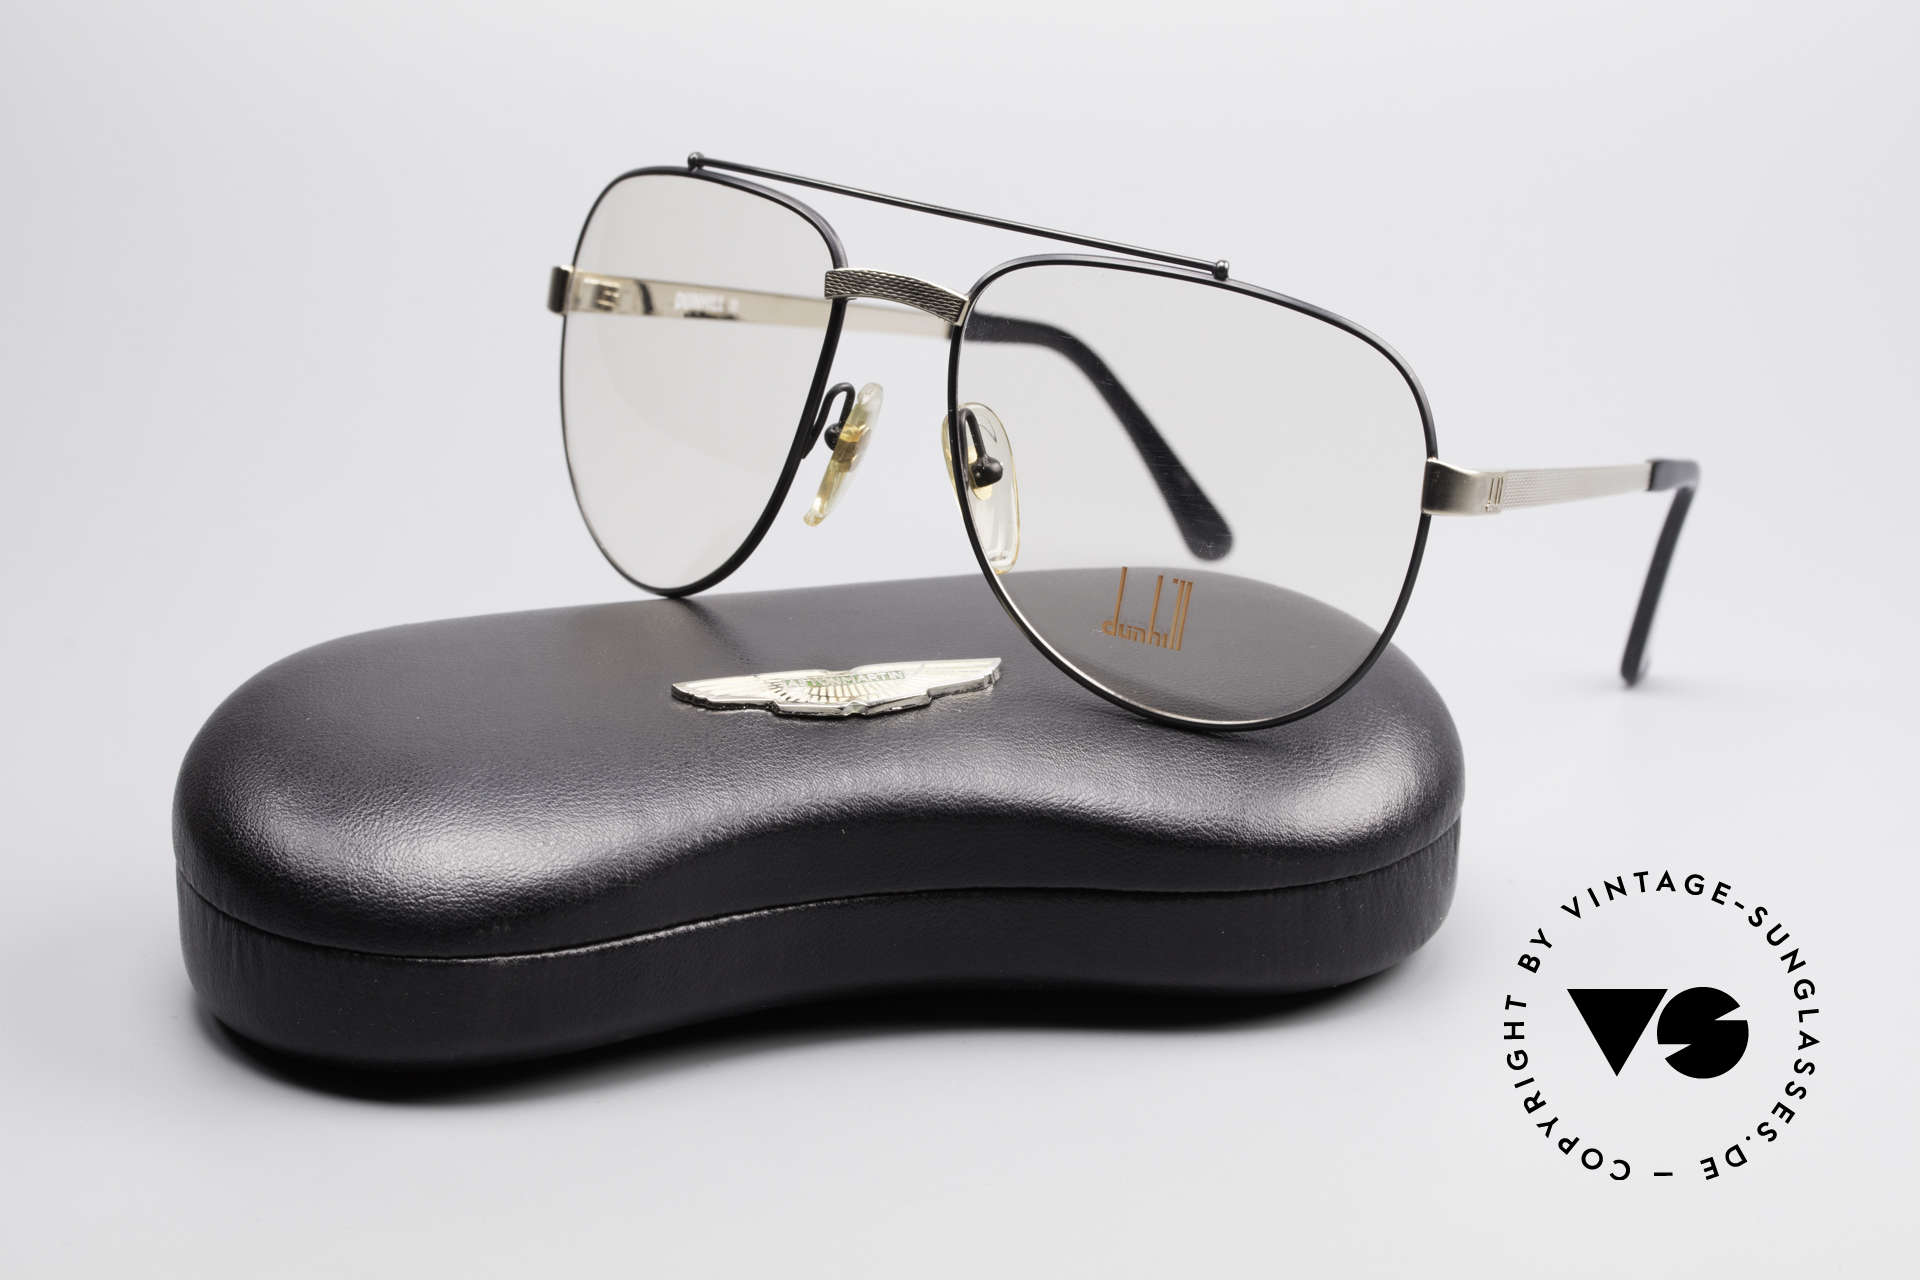 Dunhill 6029 Comfort Fit Luxury Eyeglasses, NO RETRO, but a precious 35 years old ORIGINAL, Made for Men